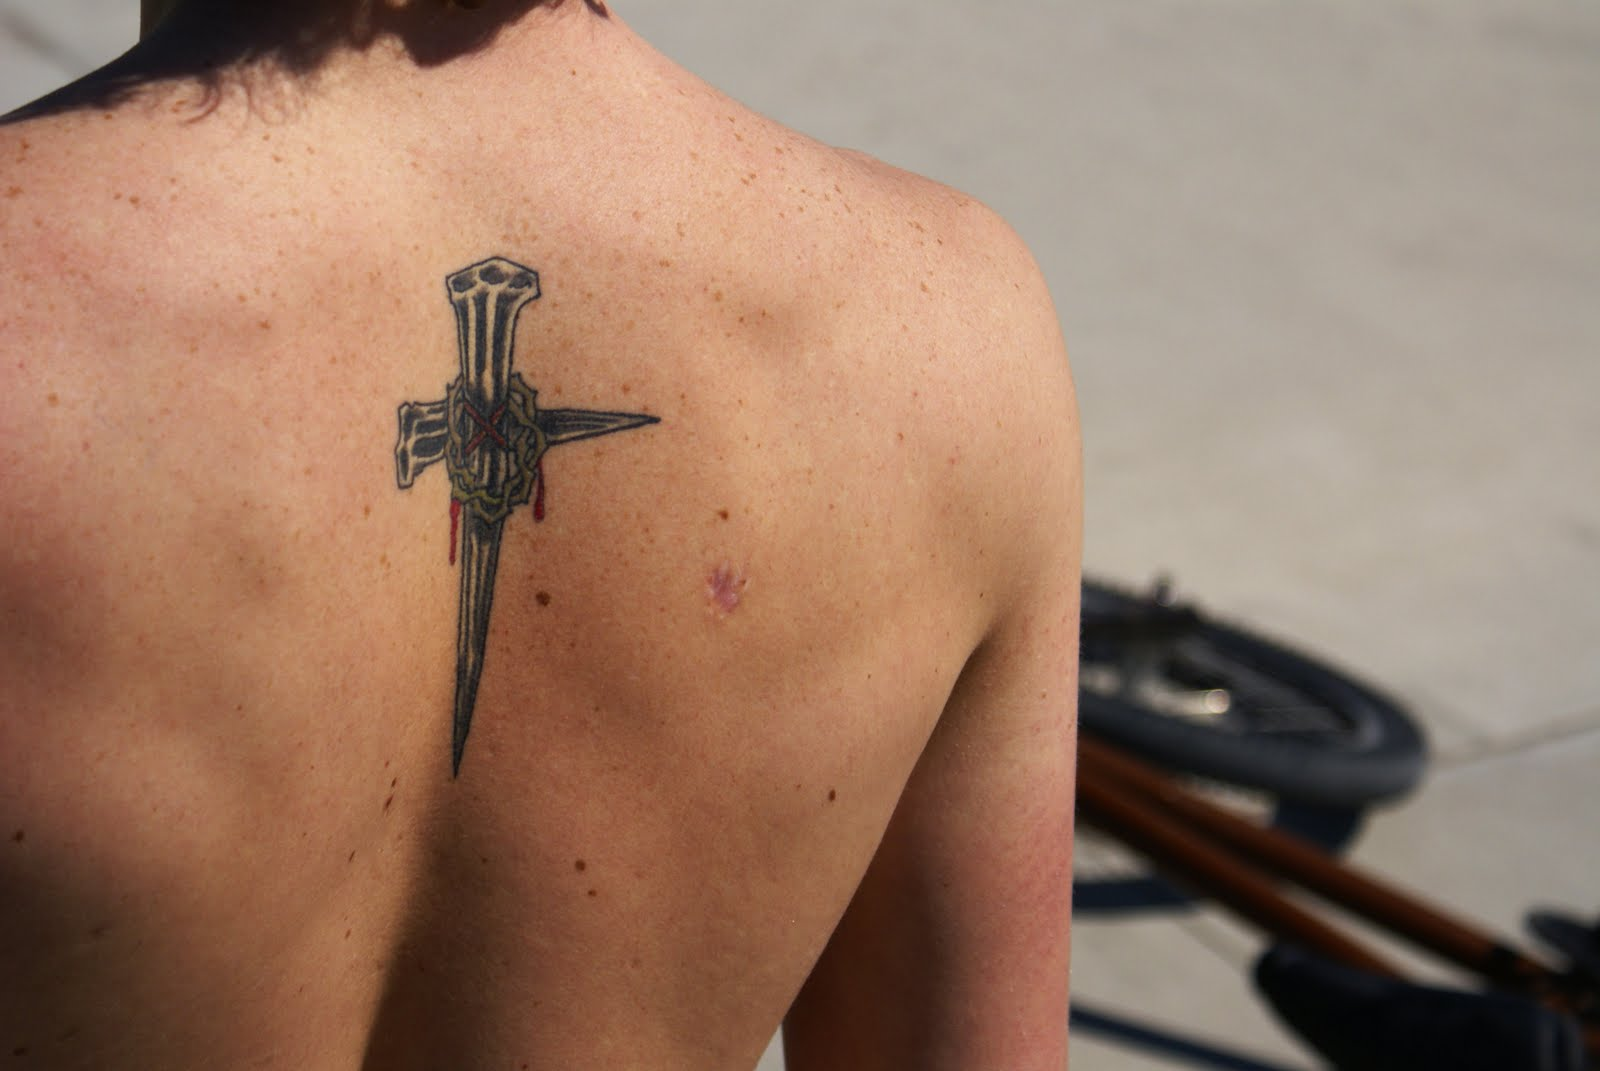 Nail Cross Tattoo: What Would Justin Beiber Do